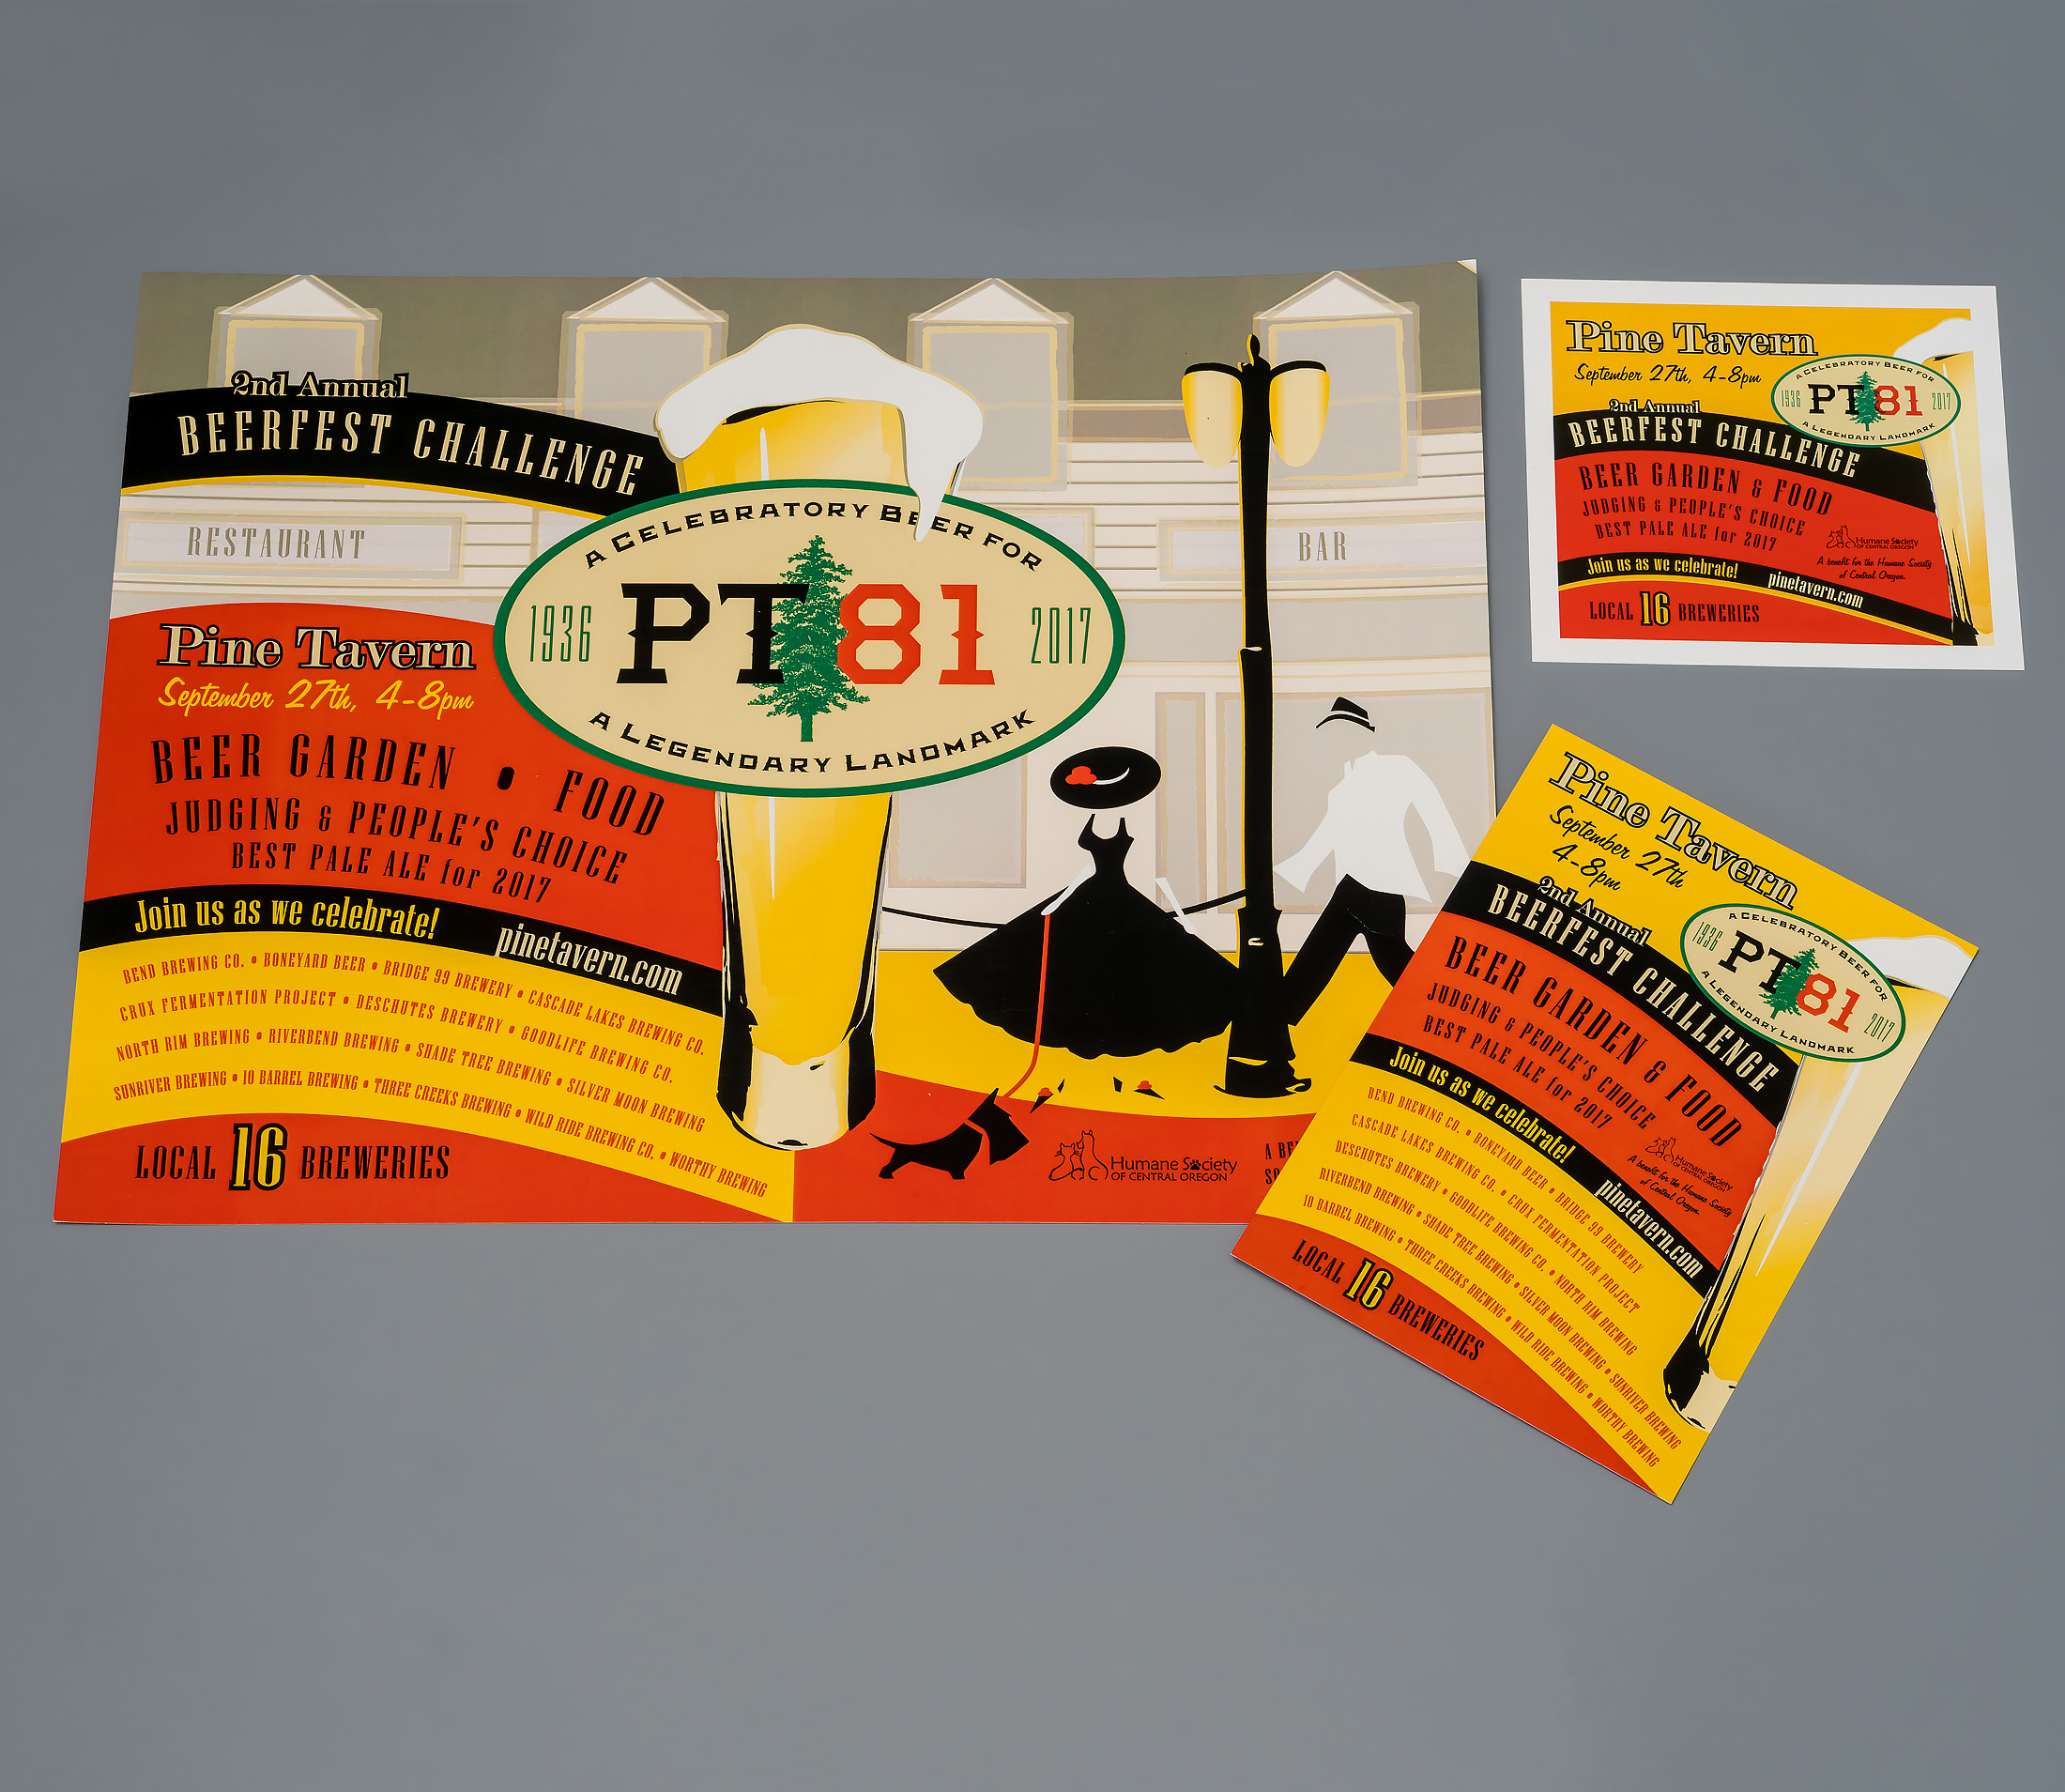 Pine-Tavern-collateral-2